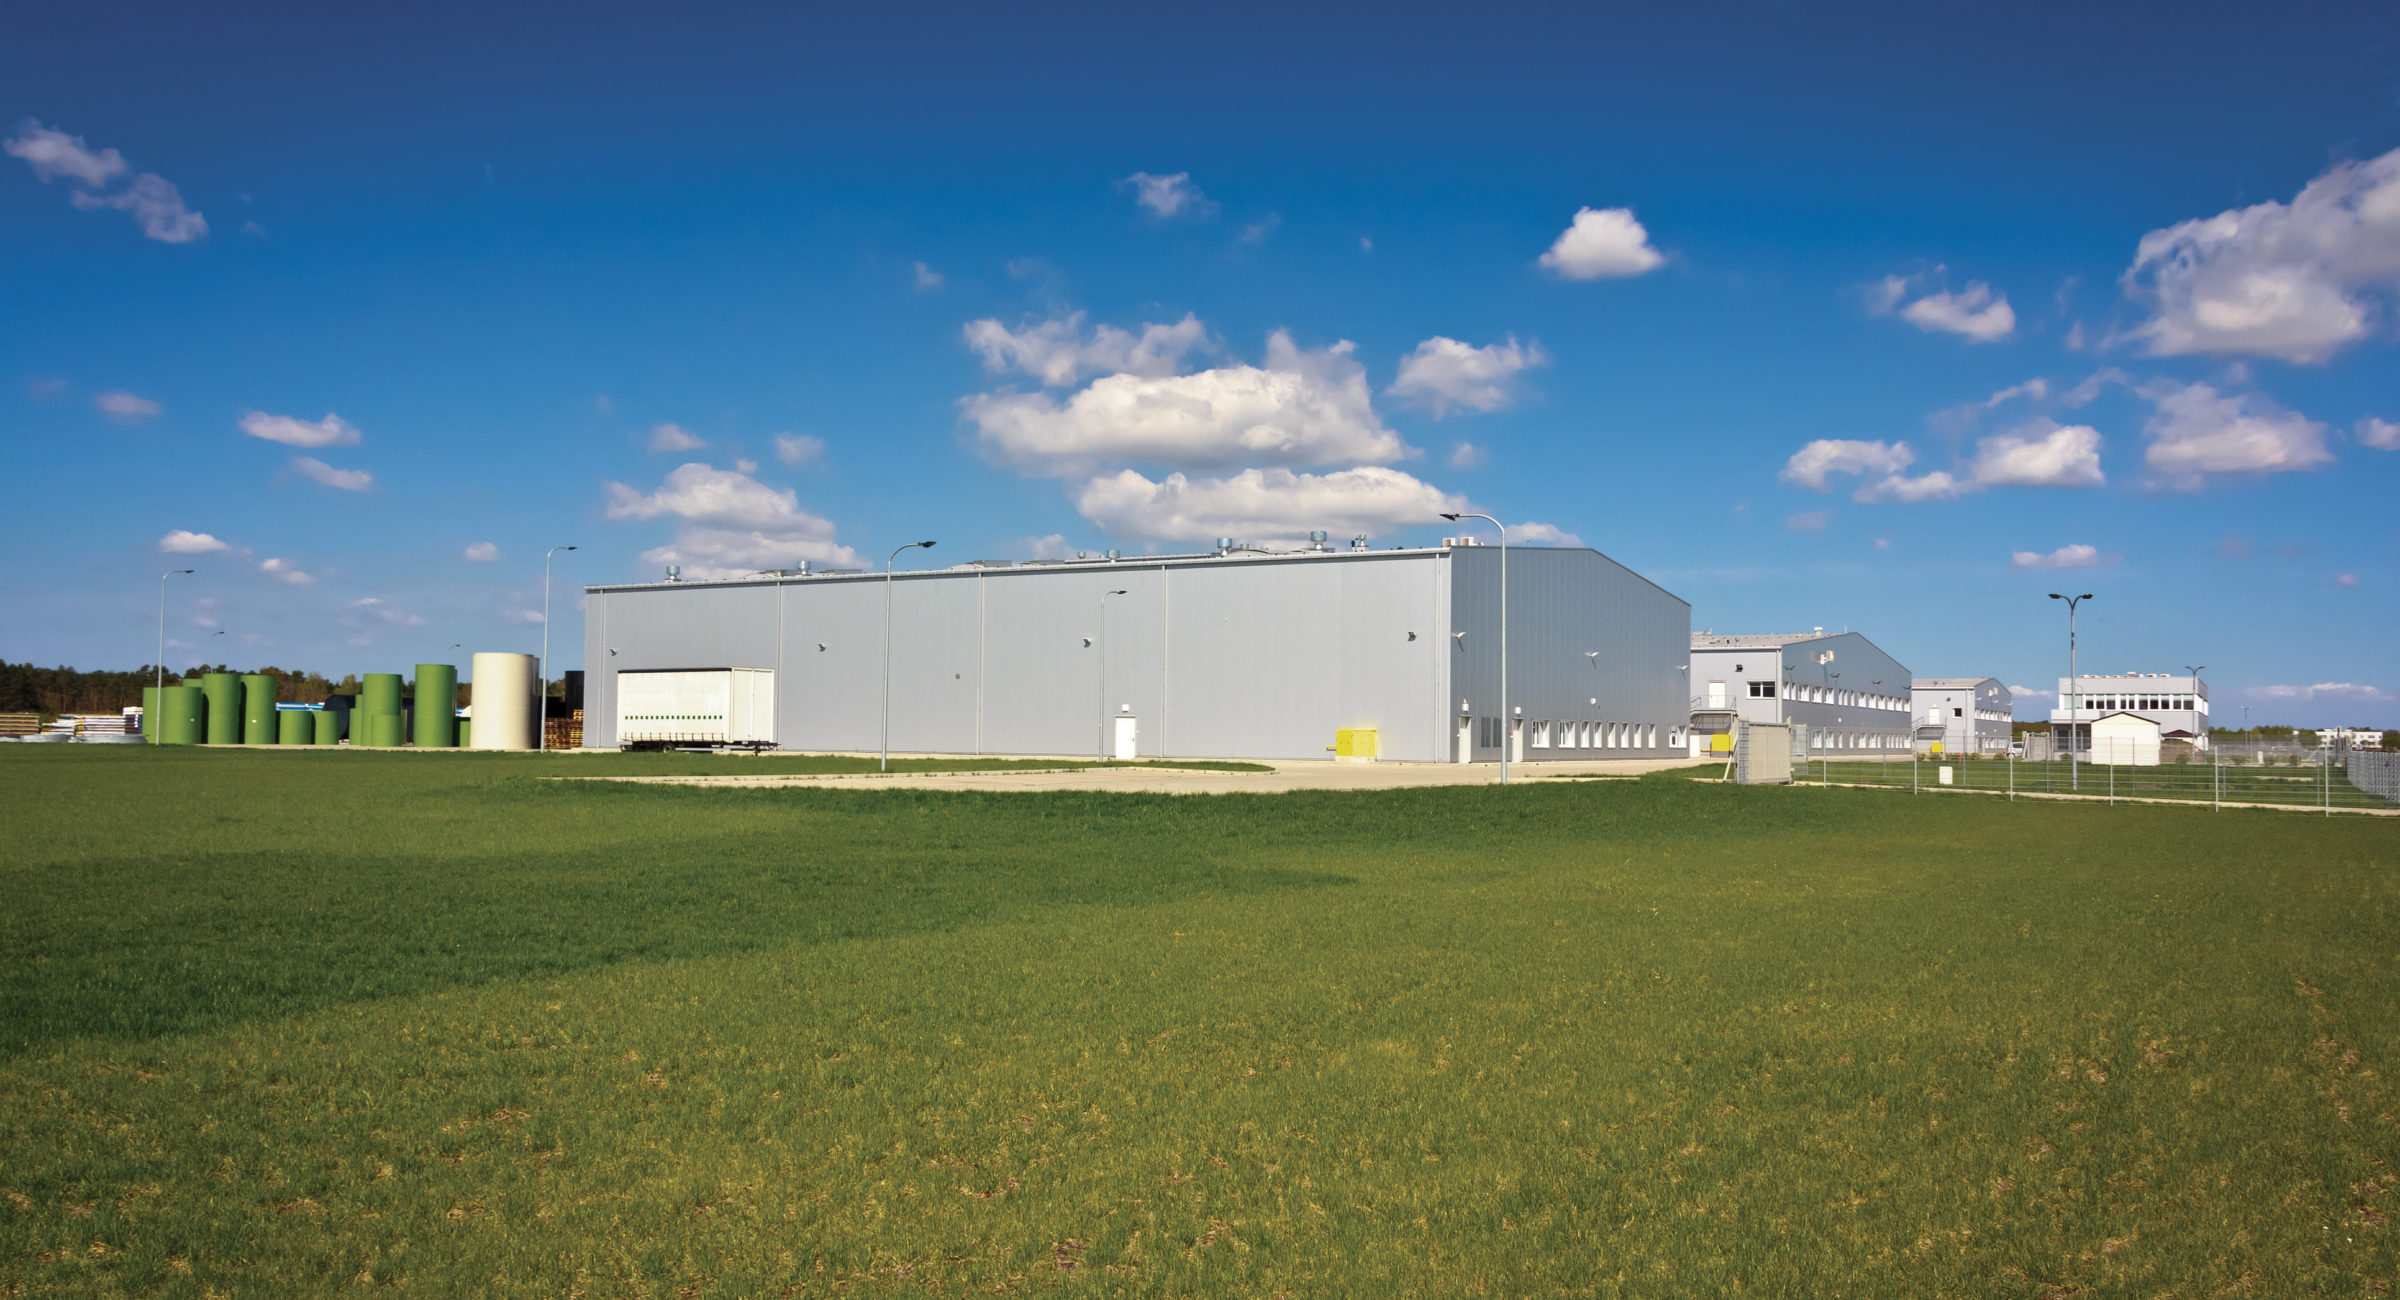 Warehouse buildings on green fieldSee more BUILT STRUCTURE images here: